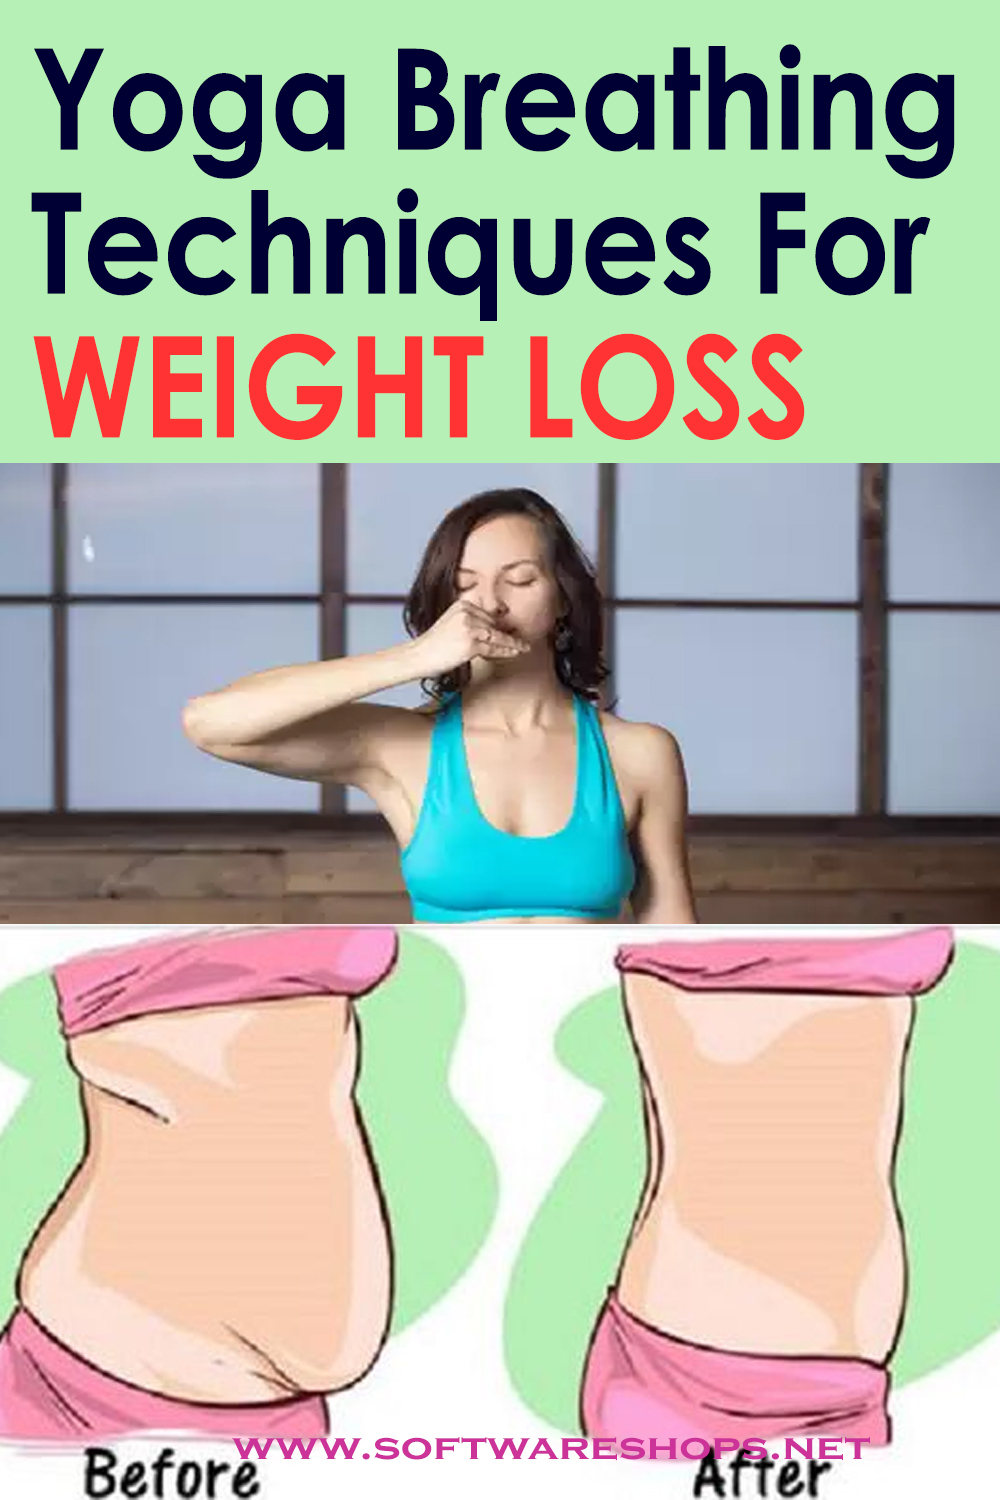 yoga-breathing-techniques-for-weight-loss